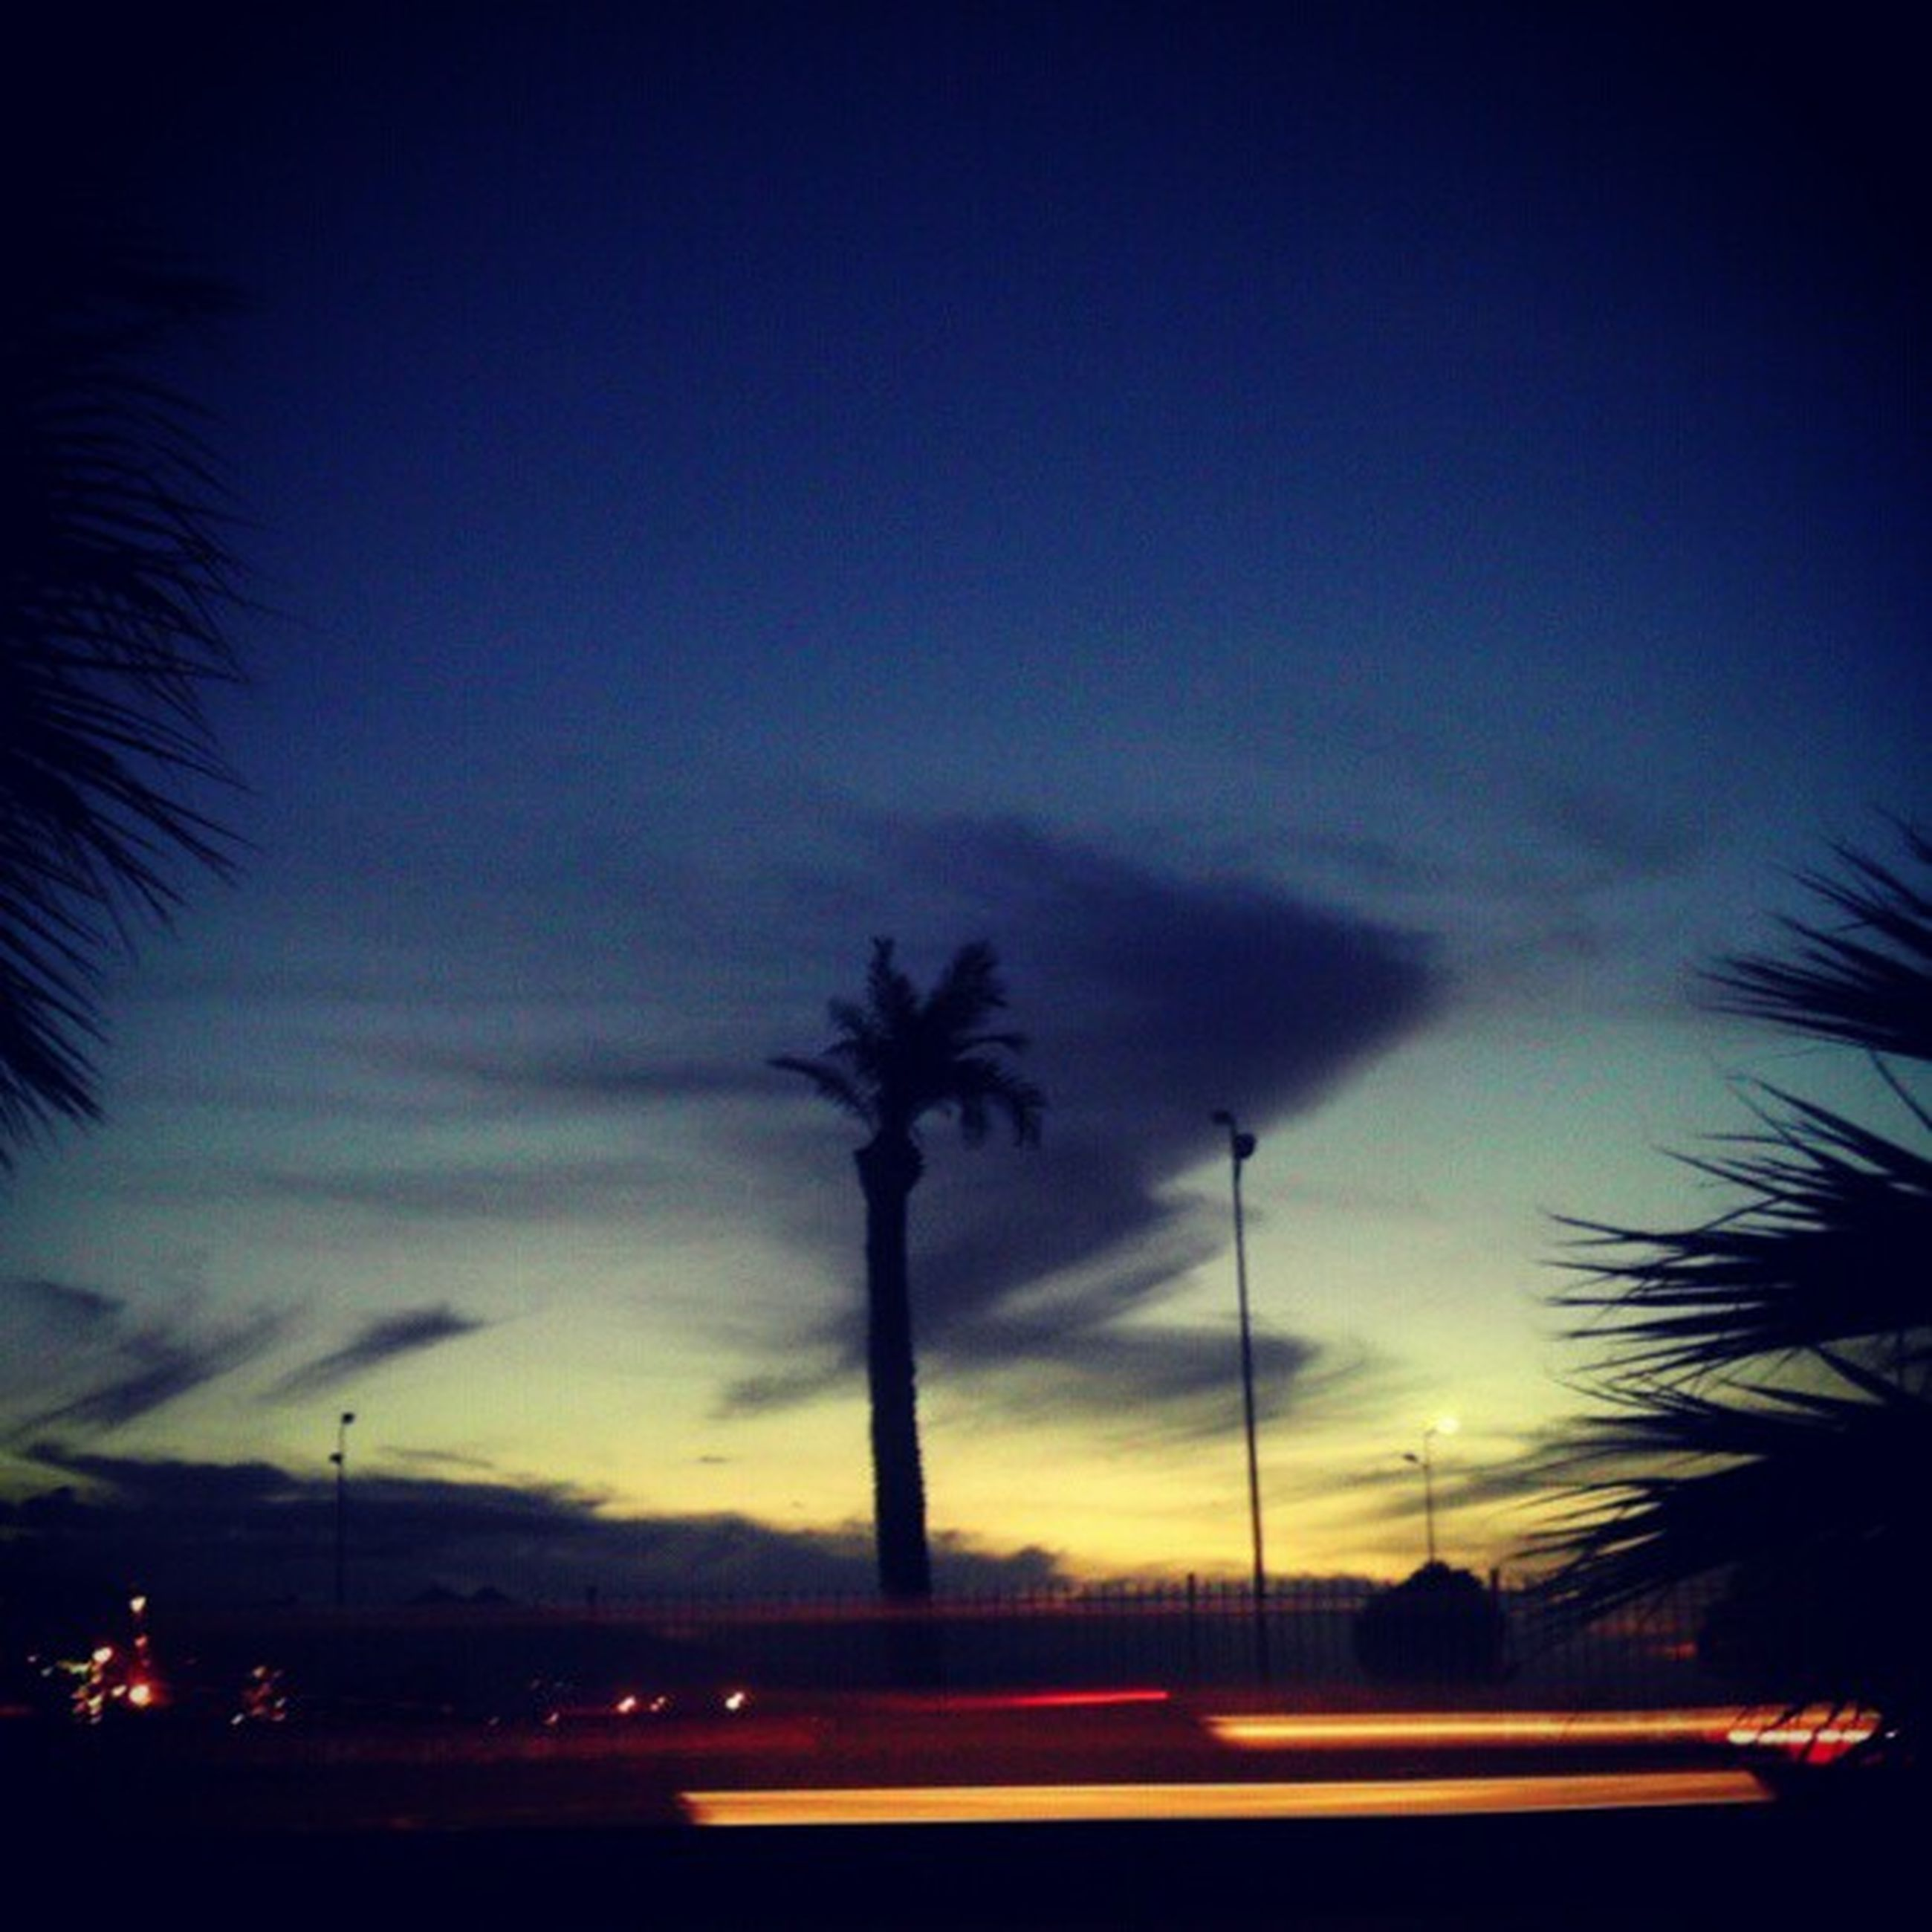 transportation, illuminated, car, sky, road, land vehicle, silhouette, street light, mode of transport, night, sunset, palm tree, tree, street, dusk, traffic, cloud - sky, long exposure, blue, motion